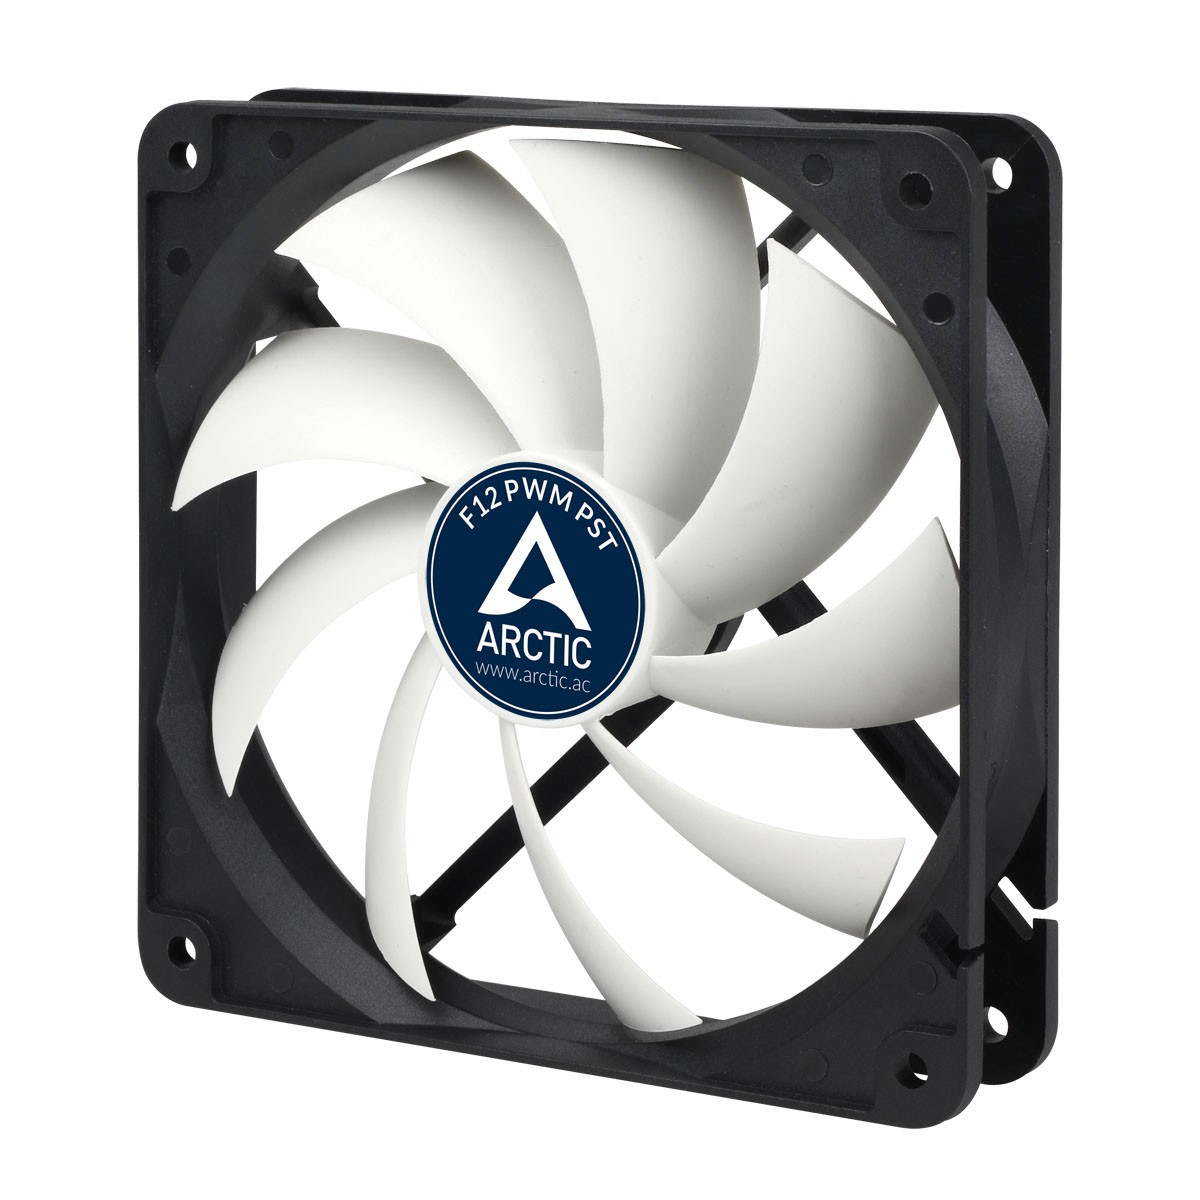 Вентилятор Arctic Cooling F12 PWM PST (AFACO-120P0-GBA01) Black/White (120mm, 600-1350rpm, 53CFM, 22.5dBa, 4-pin+PST)